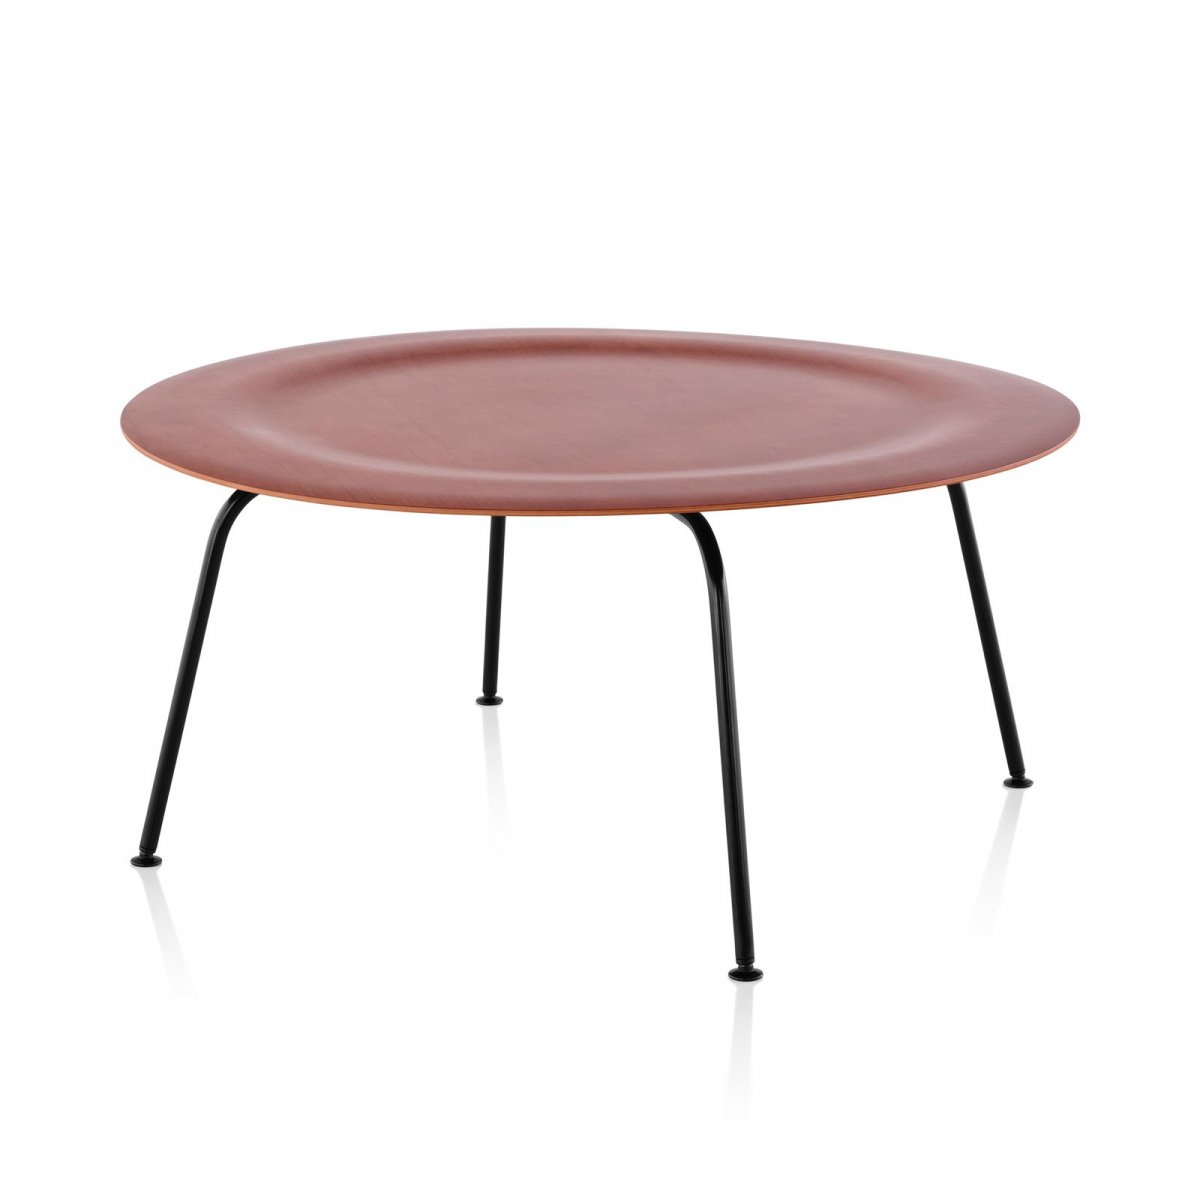 Eames Molded Plywood Coffee Table Metal Base, cherry top, black base.